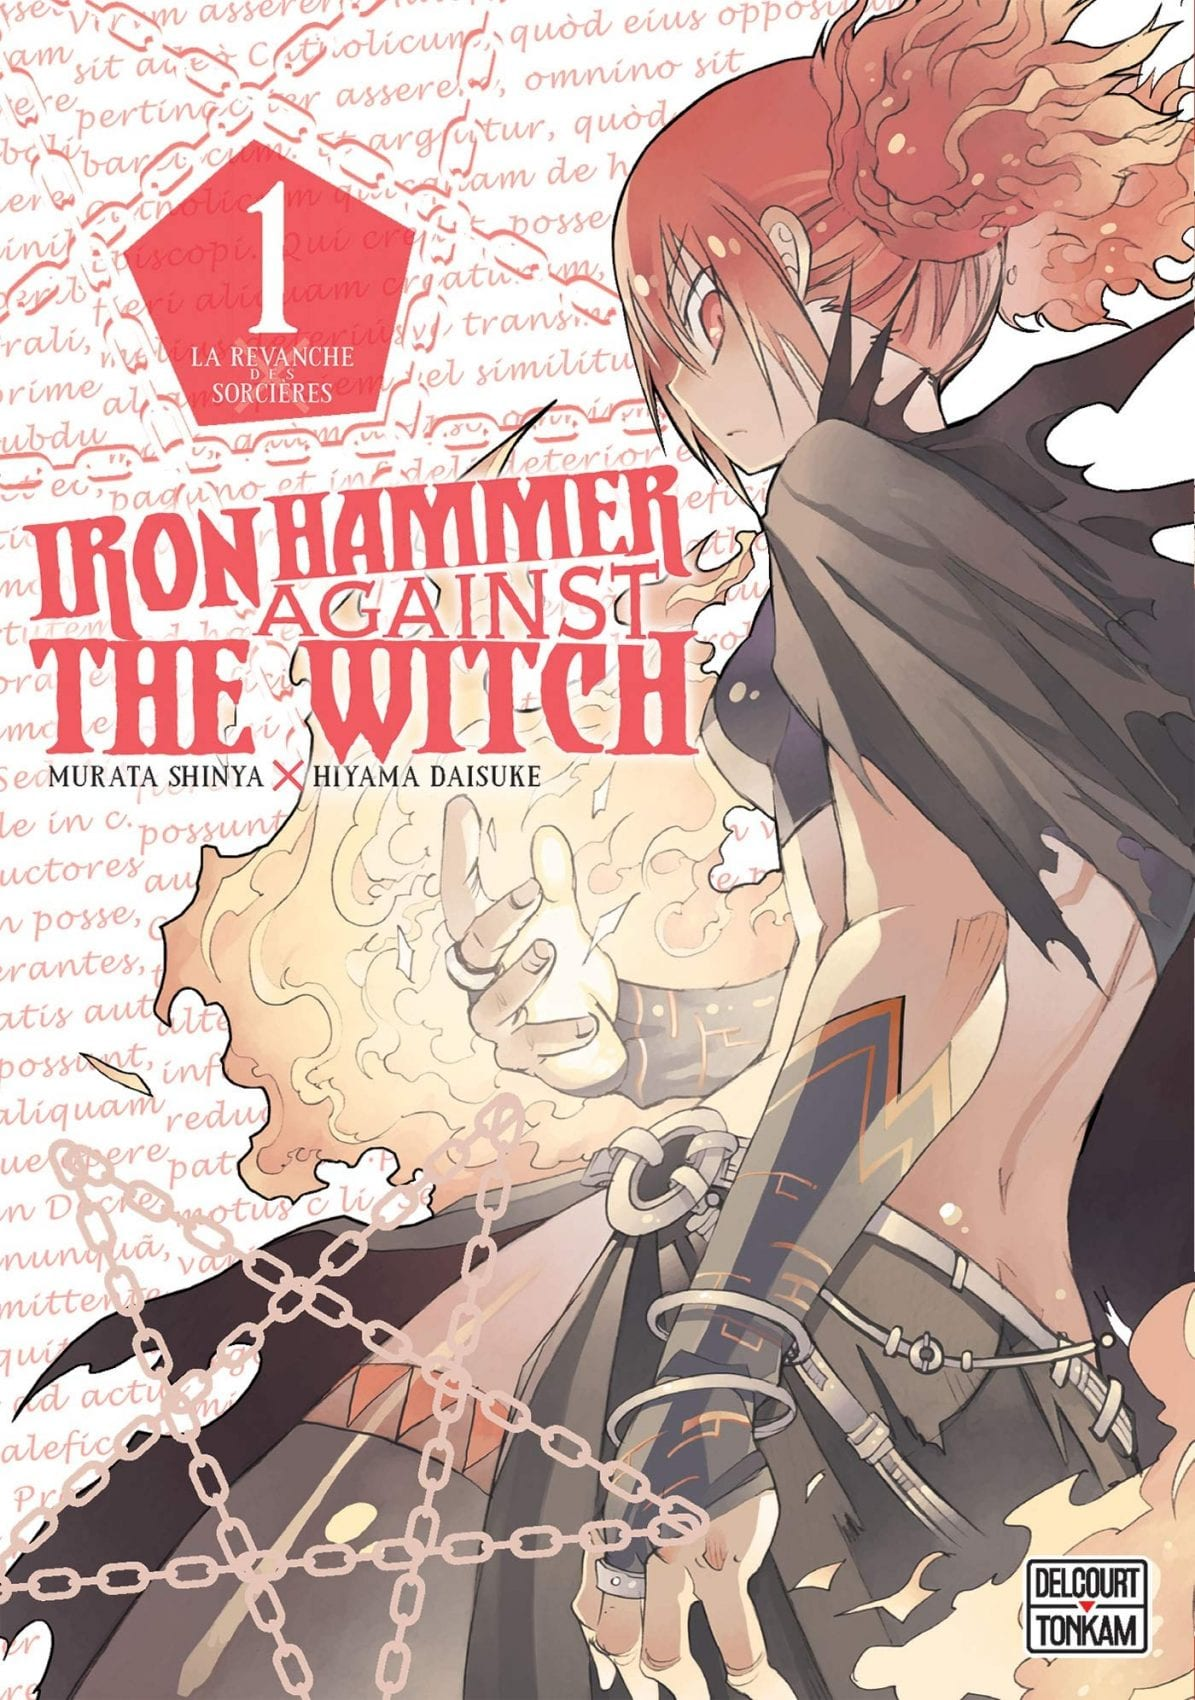 REVIEW – Iron Hammer Against The Witch (tome 1)